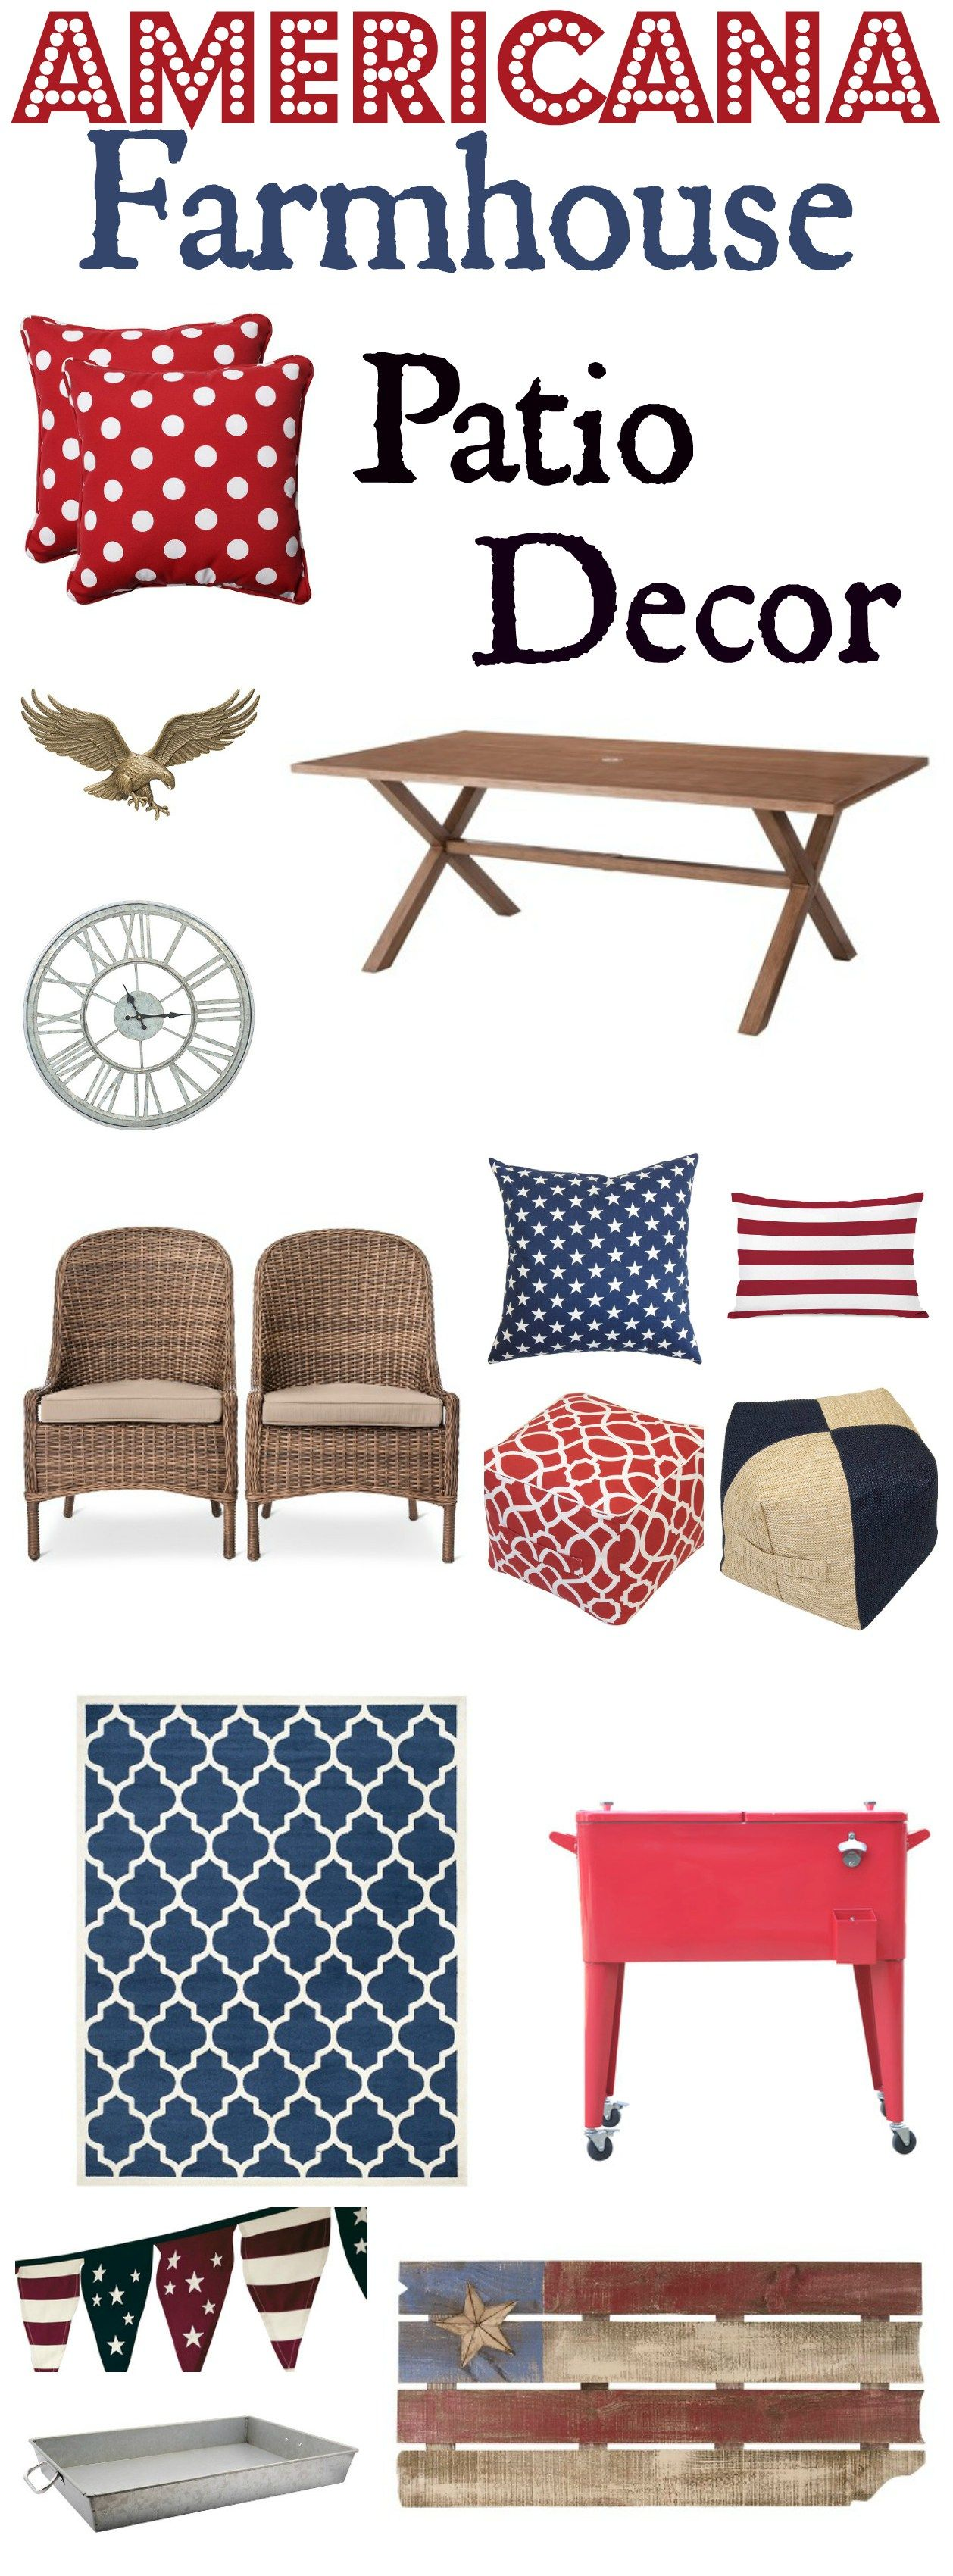 Patriotic Patio Decor | Patio decor, Patio decorating ... on Blue Fox Outdoor Living id=48296